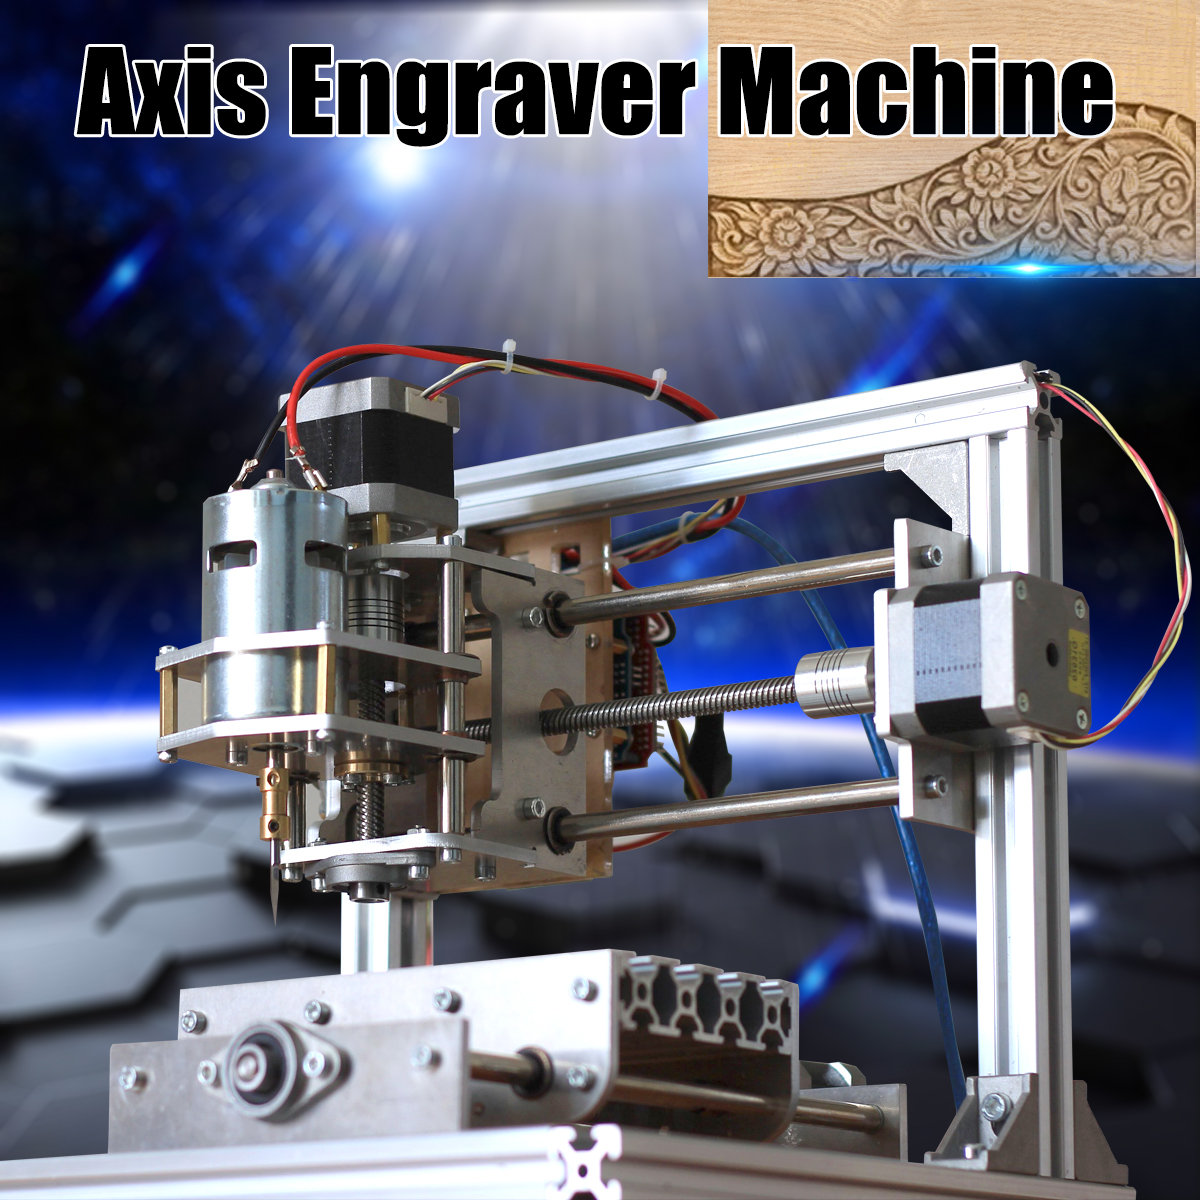 DIY Mini 24V 5A 3 Axis CNC Engraver Engraving Machine 130x100x40mm PCB Milling Wood Carving Engraving Router Kit for Grbl Board